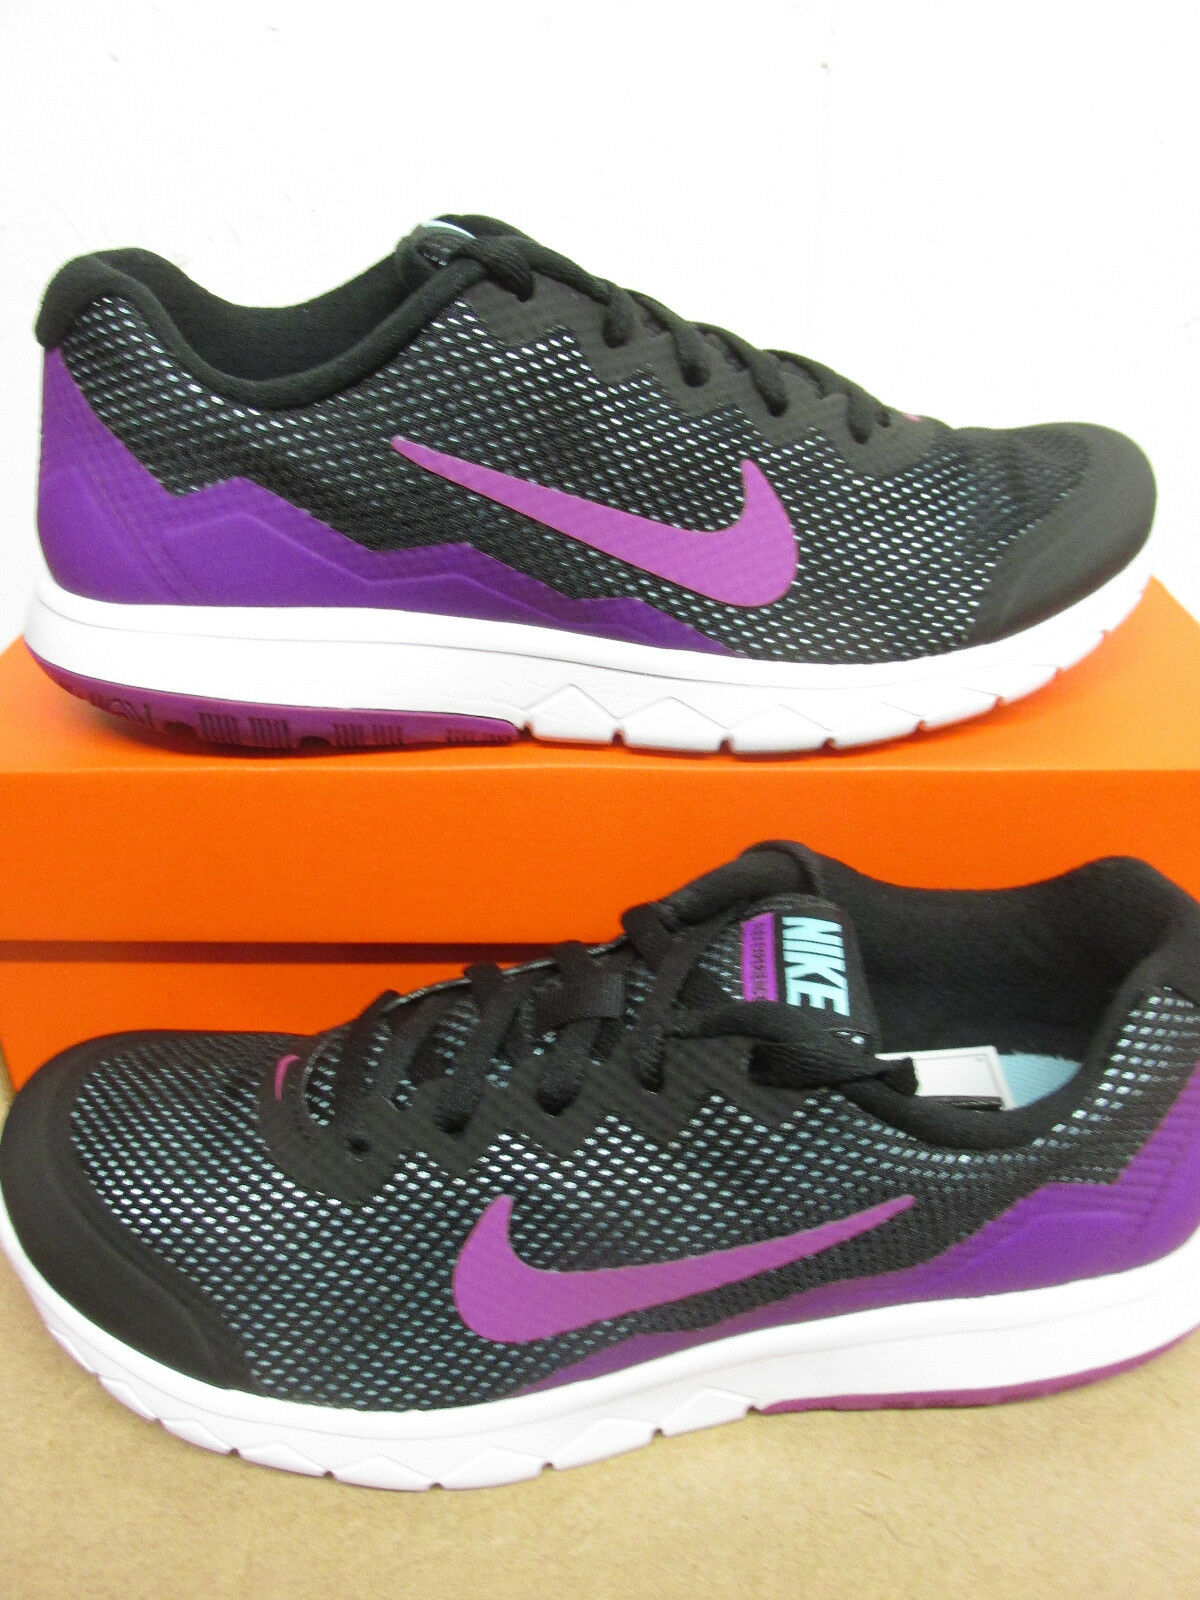 Nike Womens Flex Experience RN 4 Running Trainers 749178 010 Sneakers Shoes